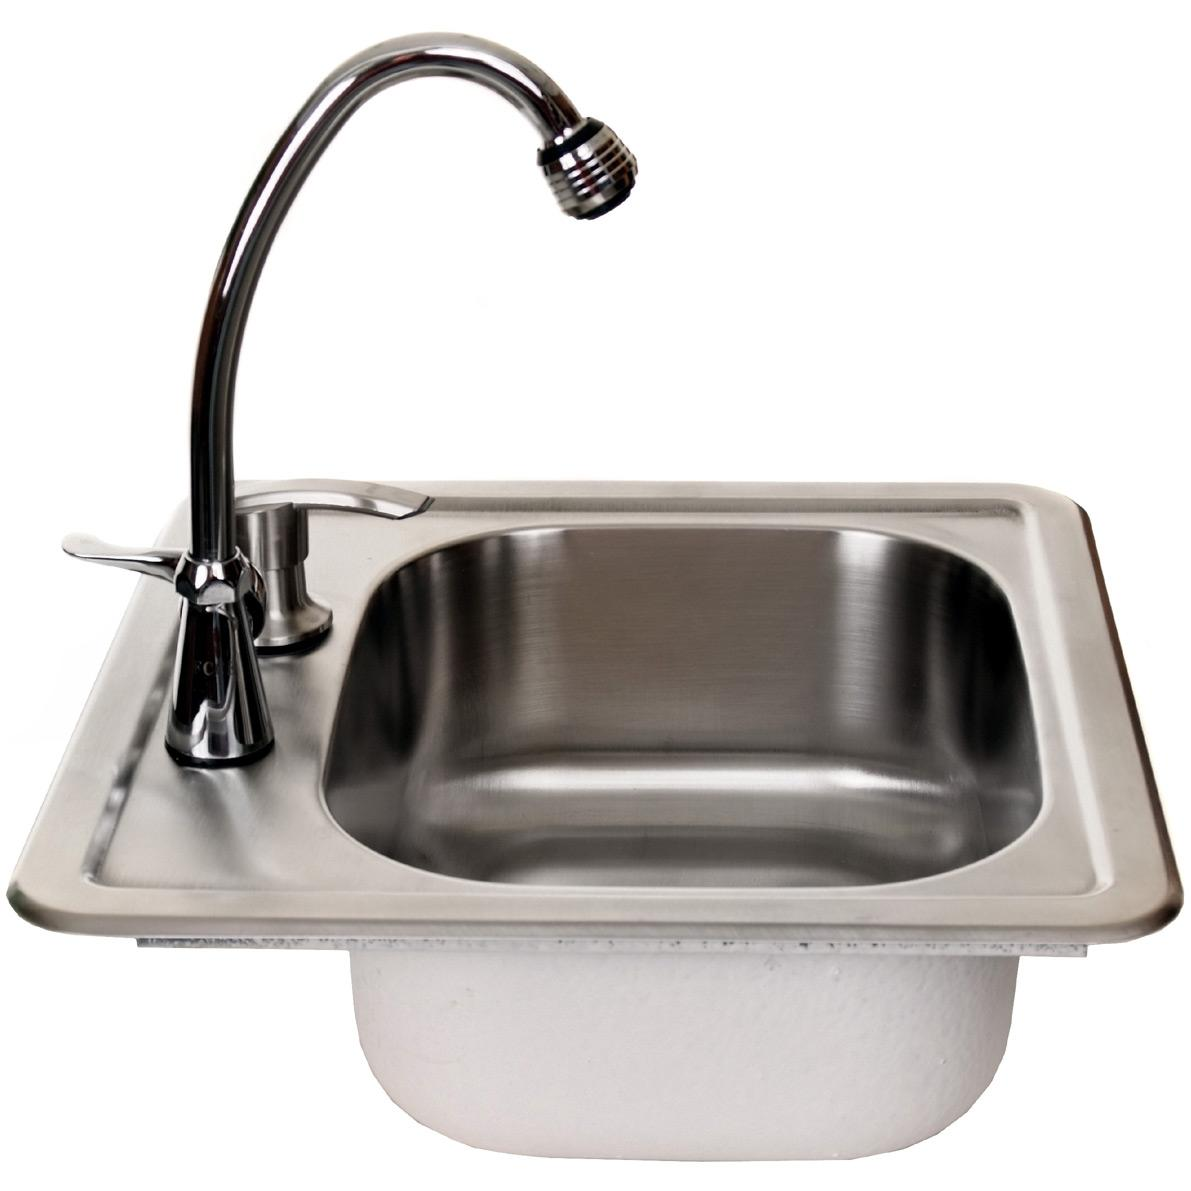 Cal Flame Stainless Steel Sink With Faucet And Soap Dispenser